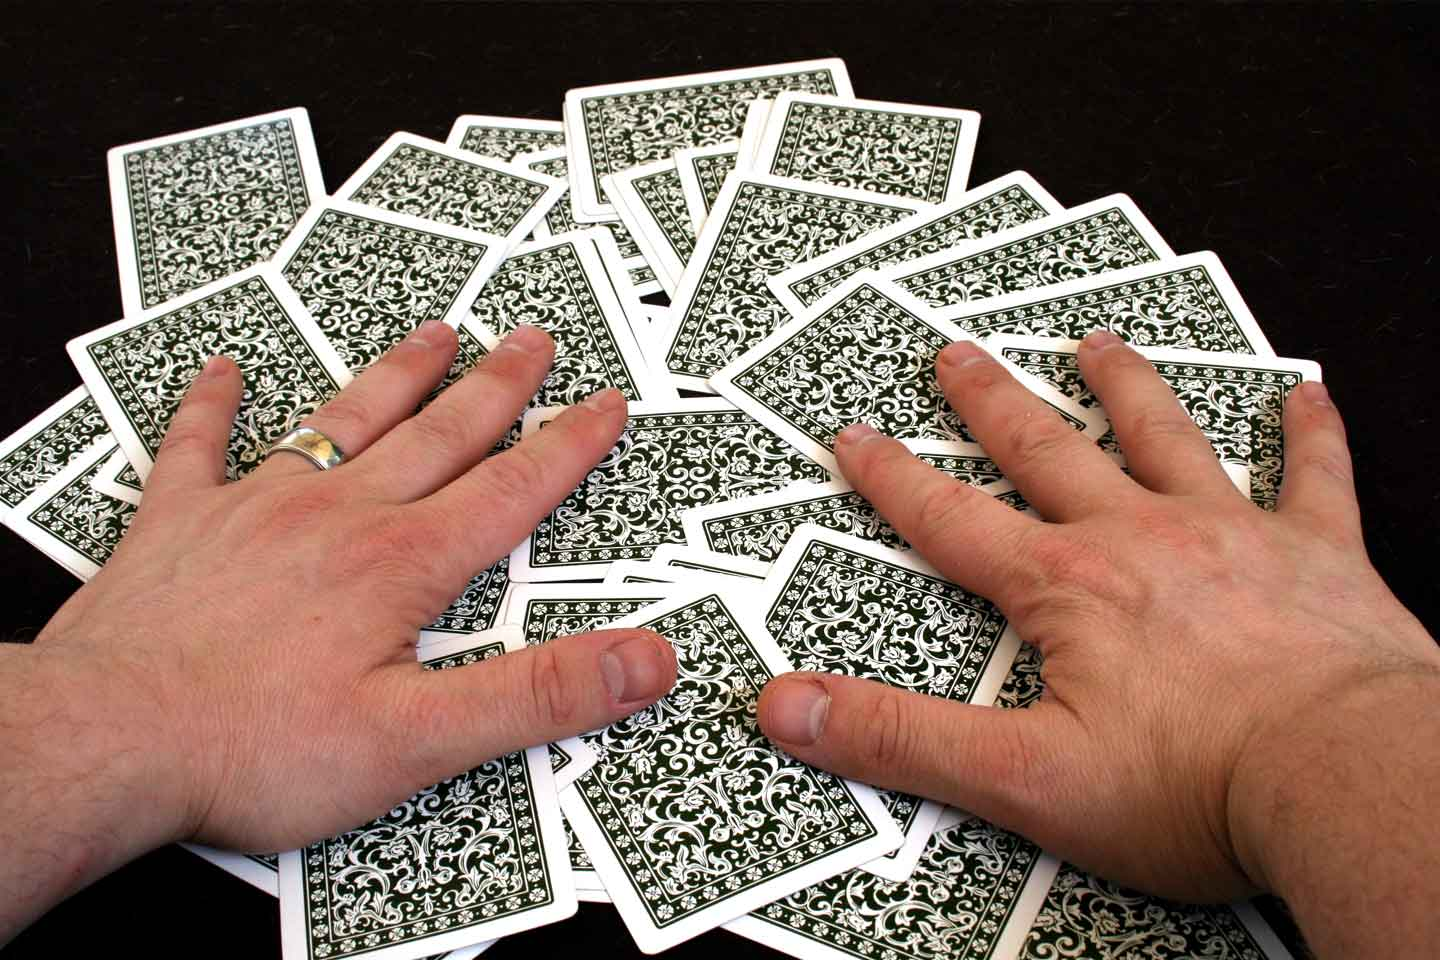 Image of Complementary card and conditioning guide detaling how to break in your playing cards